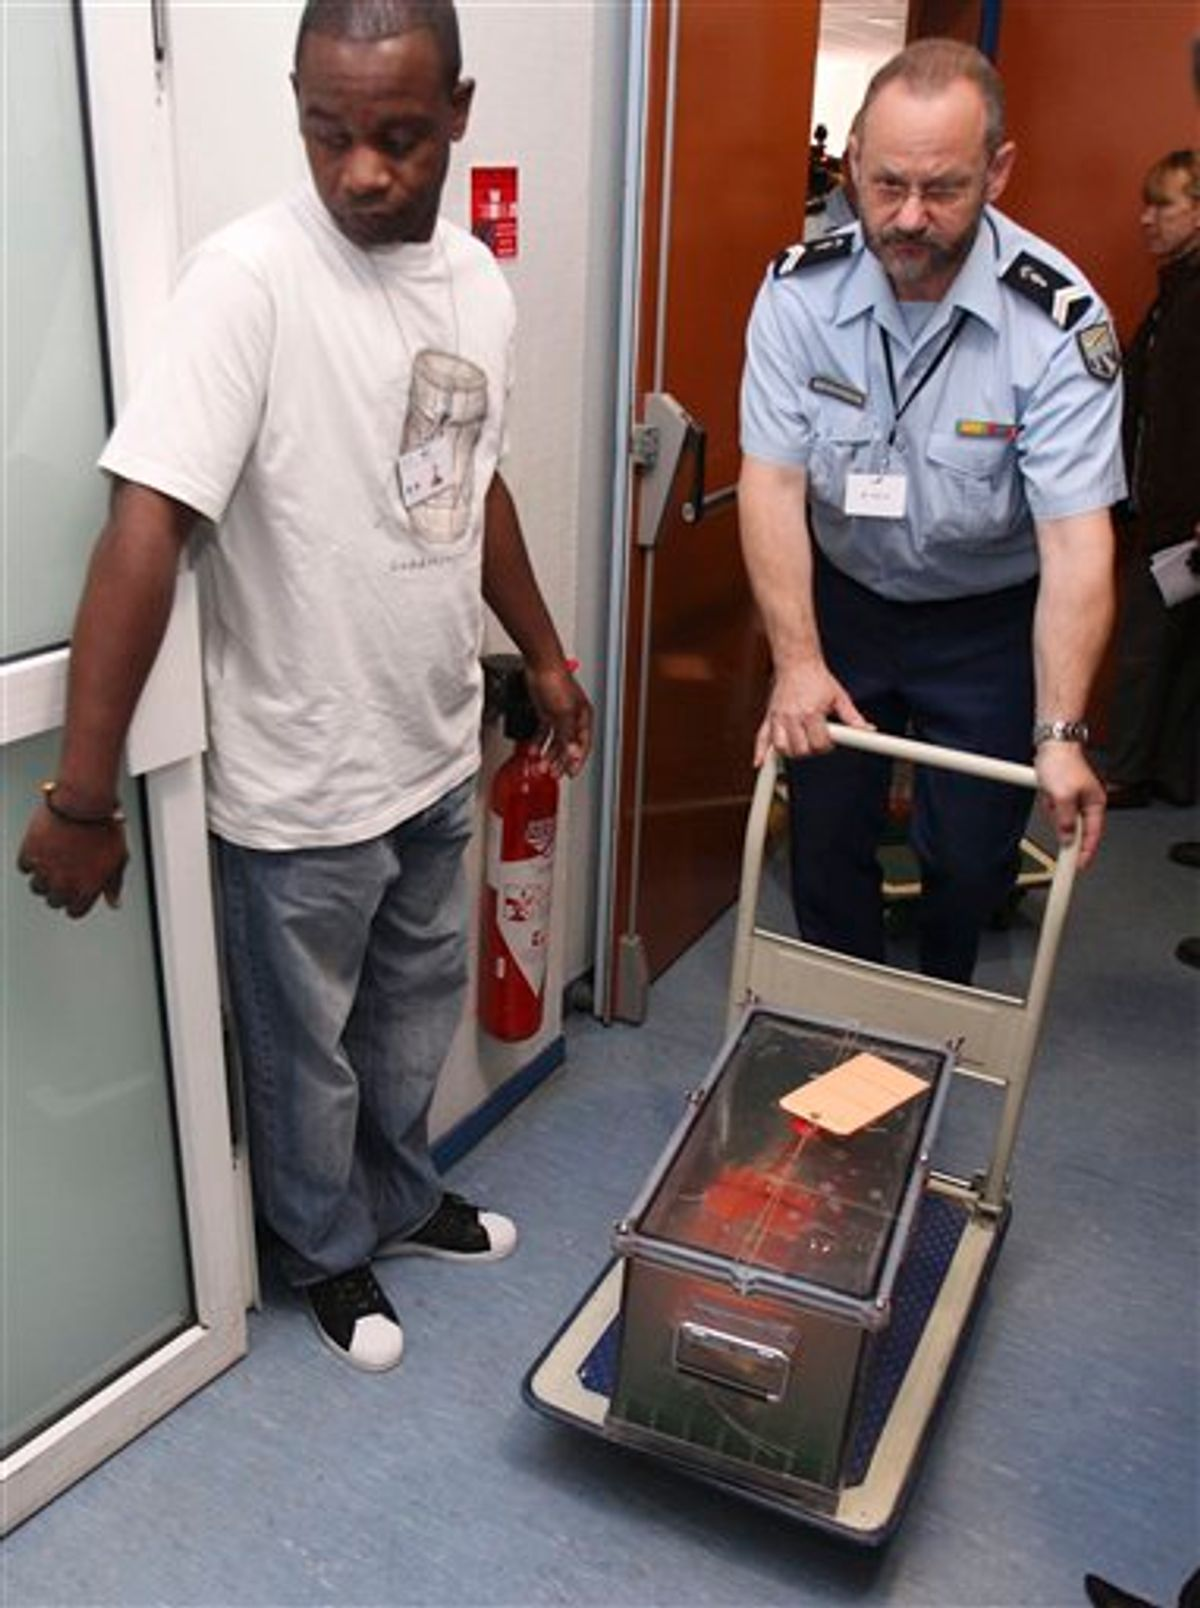 FILE- This Thursday, May 12, 2011 file photo shows a police officer pushing one of the two flight recorders of the Air France flight 447, who crashed in 2009, after they were displayed to reporters during a press conference at the French investigators' headquarters in Le Bourget, near Paris. Officials say flight recorders from an Air France plane that crashed nearly two years ago show that the captain only arrived in the cockpit after the plane had begun its fateful 3 1/2-minute descent. The initial findings of the French air accident investigation agency, the BEA, based on a reading of the so-called black boxes recovered from the ocean depths, found that the captain had been resting when the emergency began.All 228 aboard the Rio de Janeiro to Paris flight were killed on June 1, 2009. (AP Photo/Michel Euler, File)  (AP)